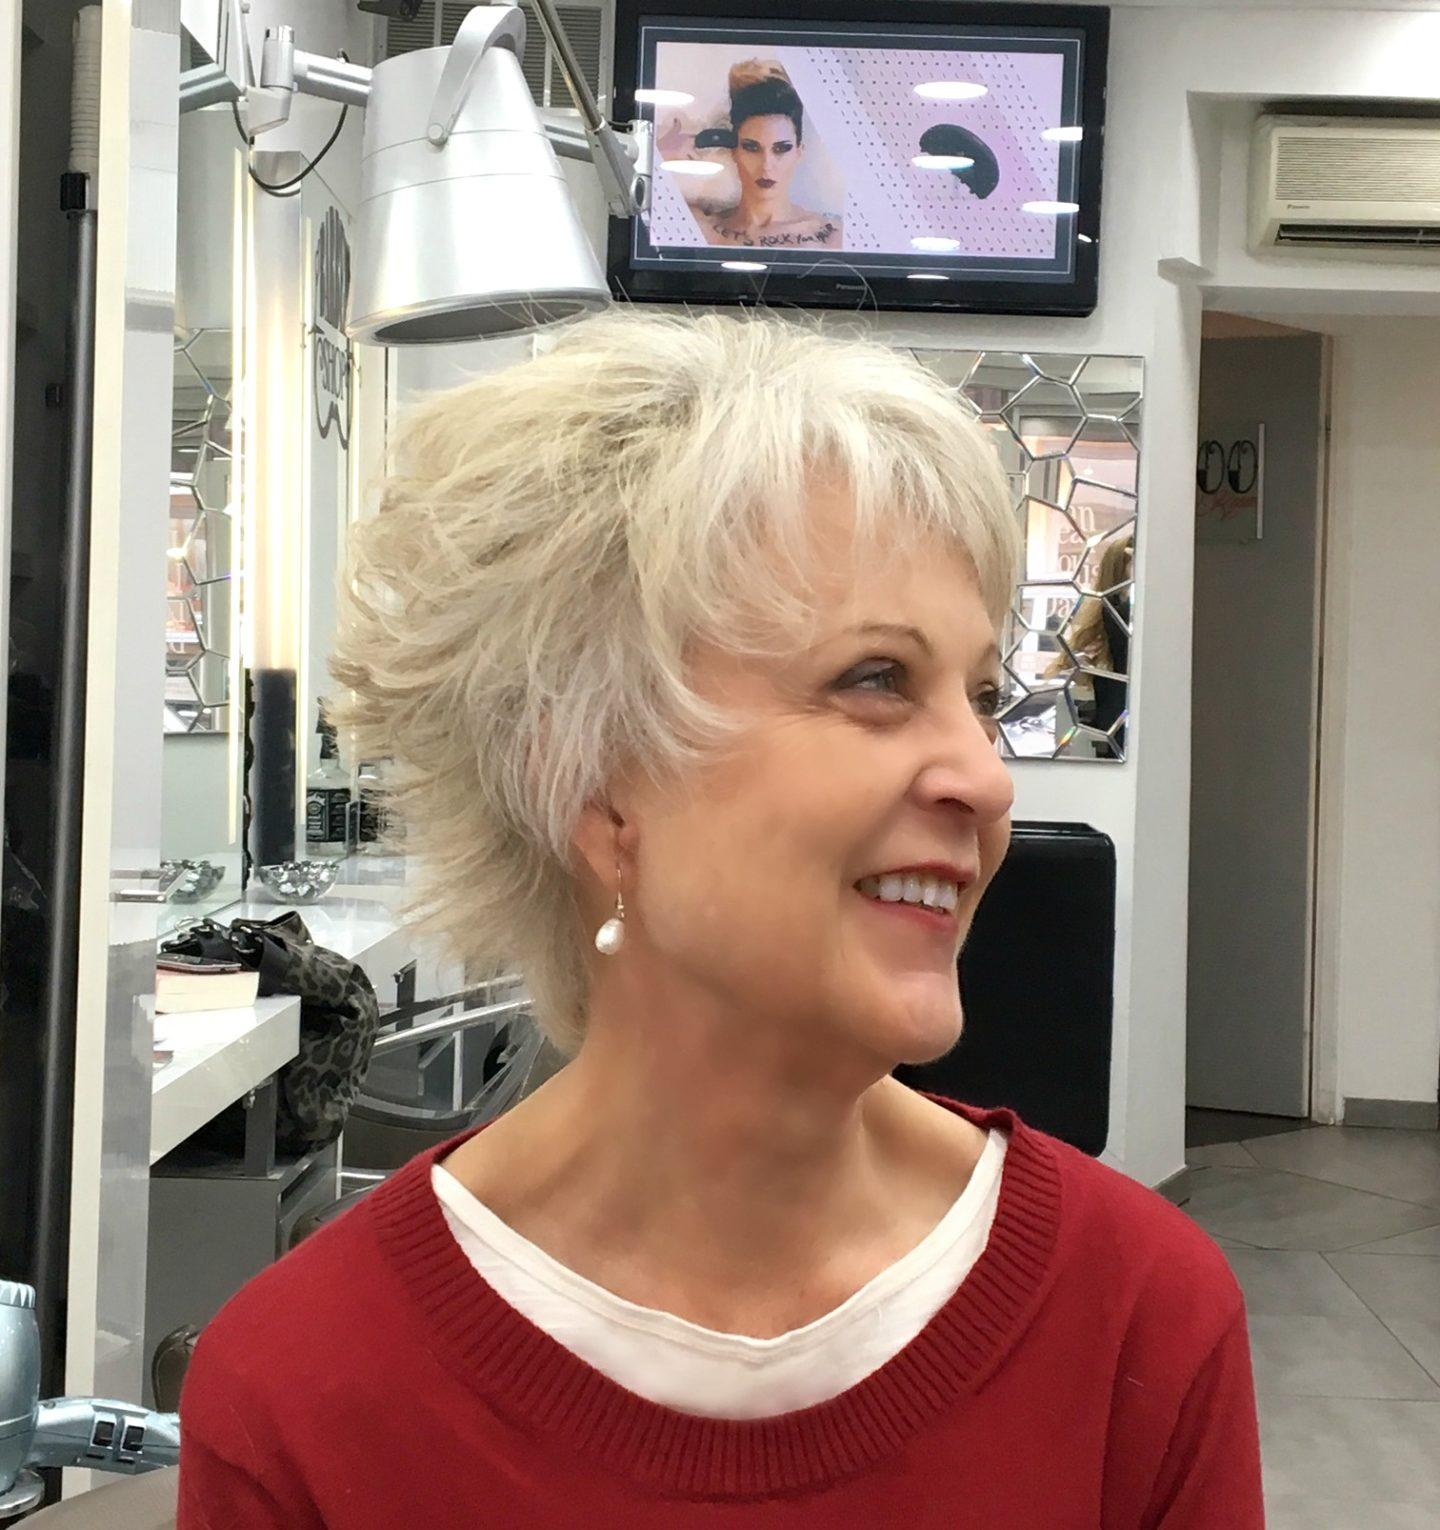 Flattering hairstyle for older women - Chic at any age